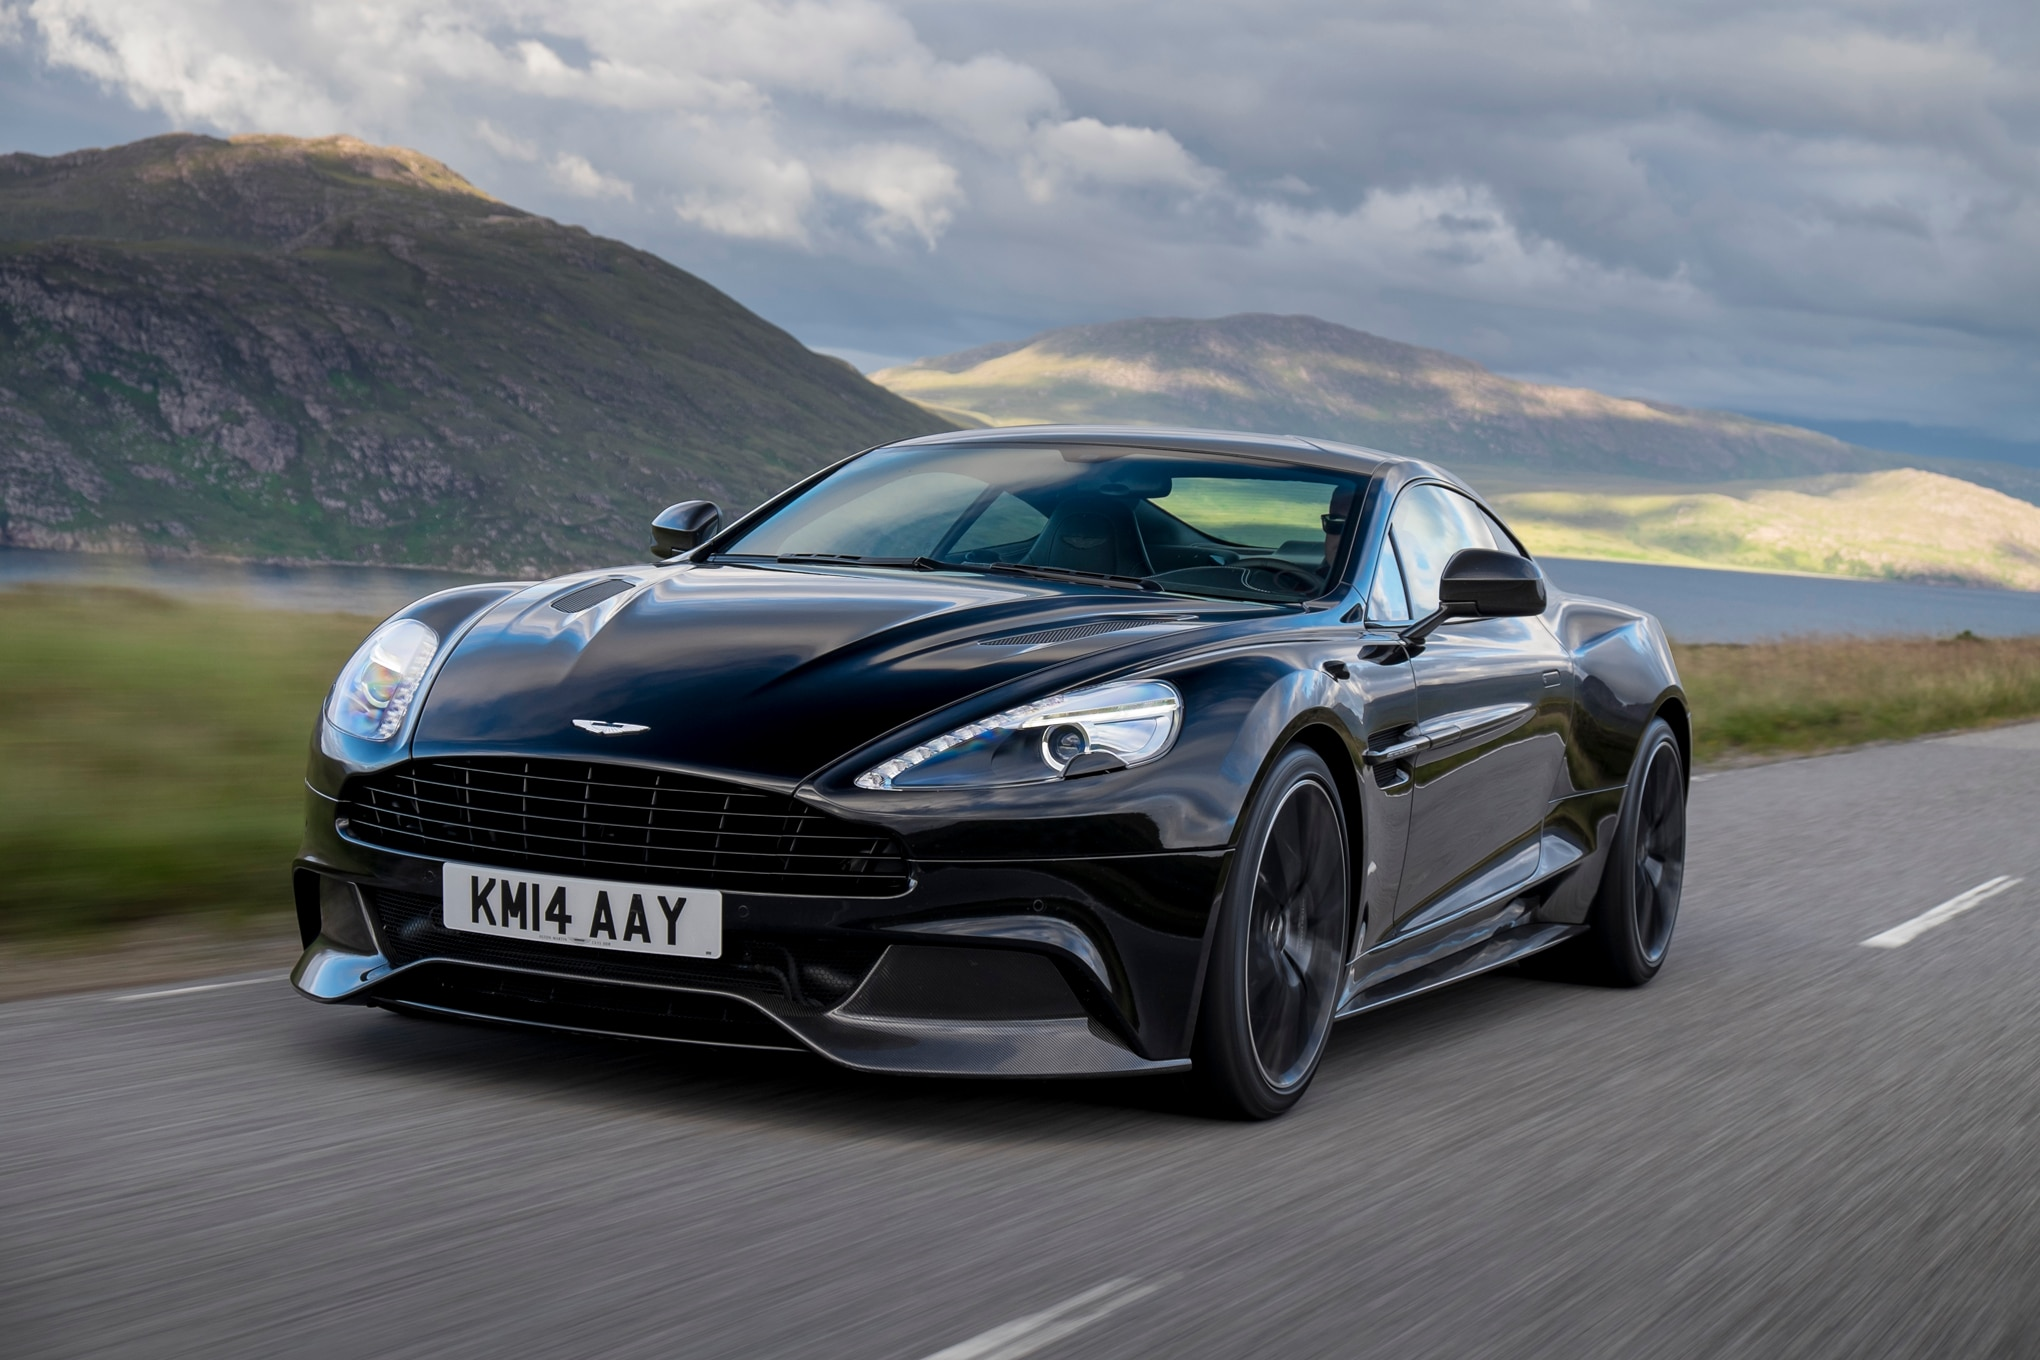 2015 Aston Martin Vanquish Front Three Quarter In Motion 041